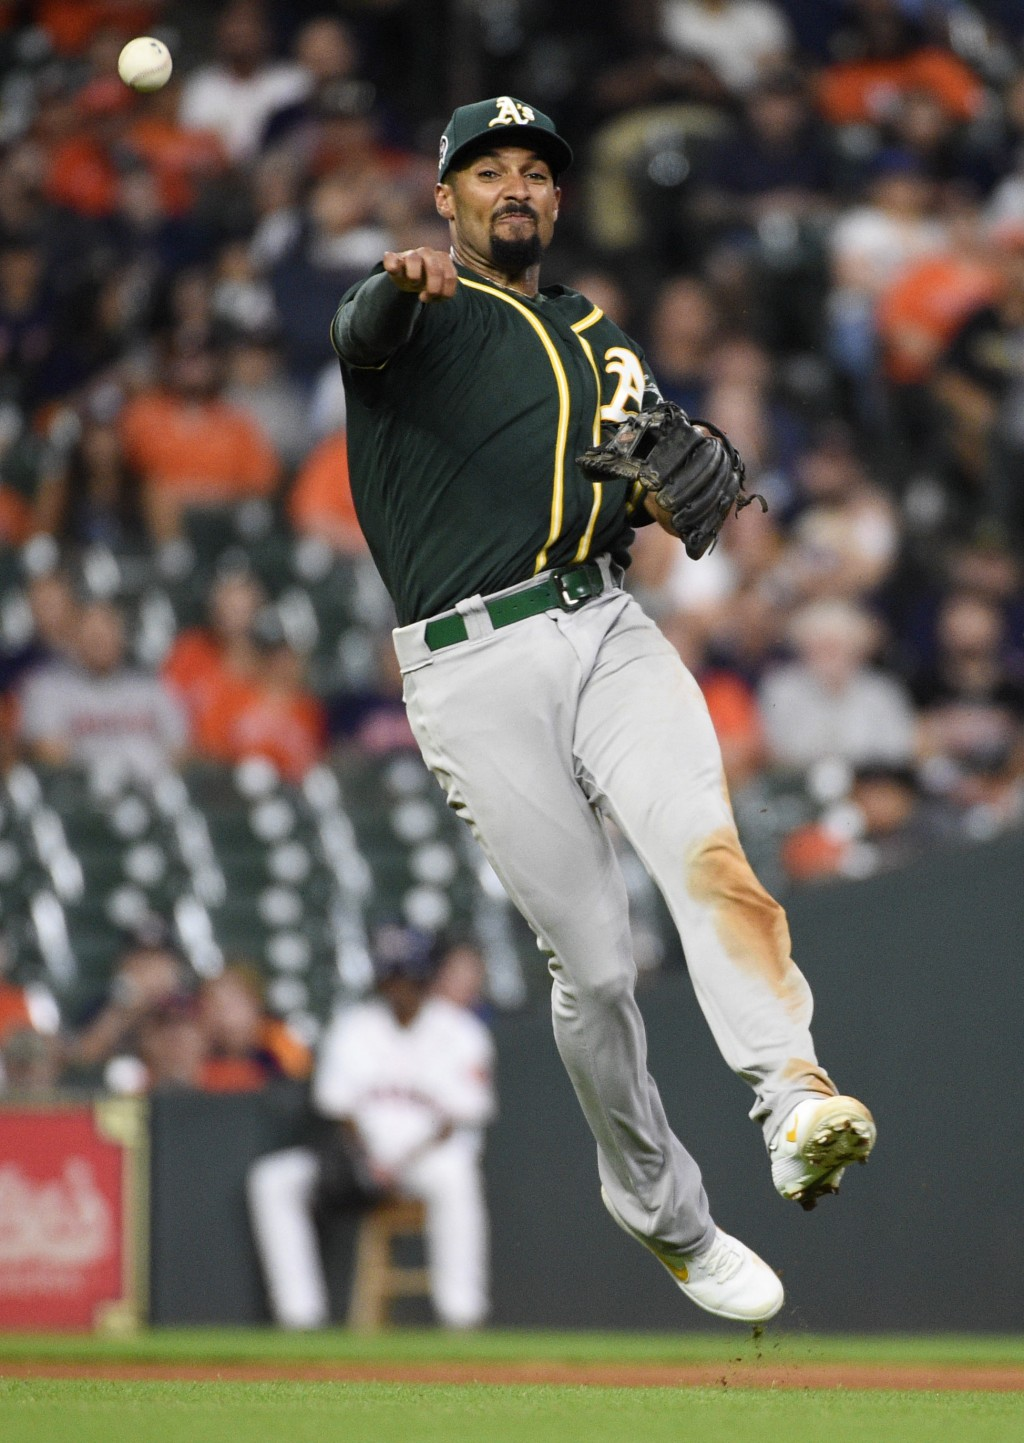 Oakland Athletics shortstop Marcus Semien throws out Houston Astros' George Springer during the seventh inning of a baseball game Wednesday, Sept. 11,